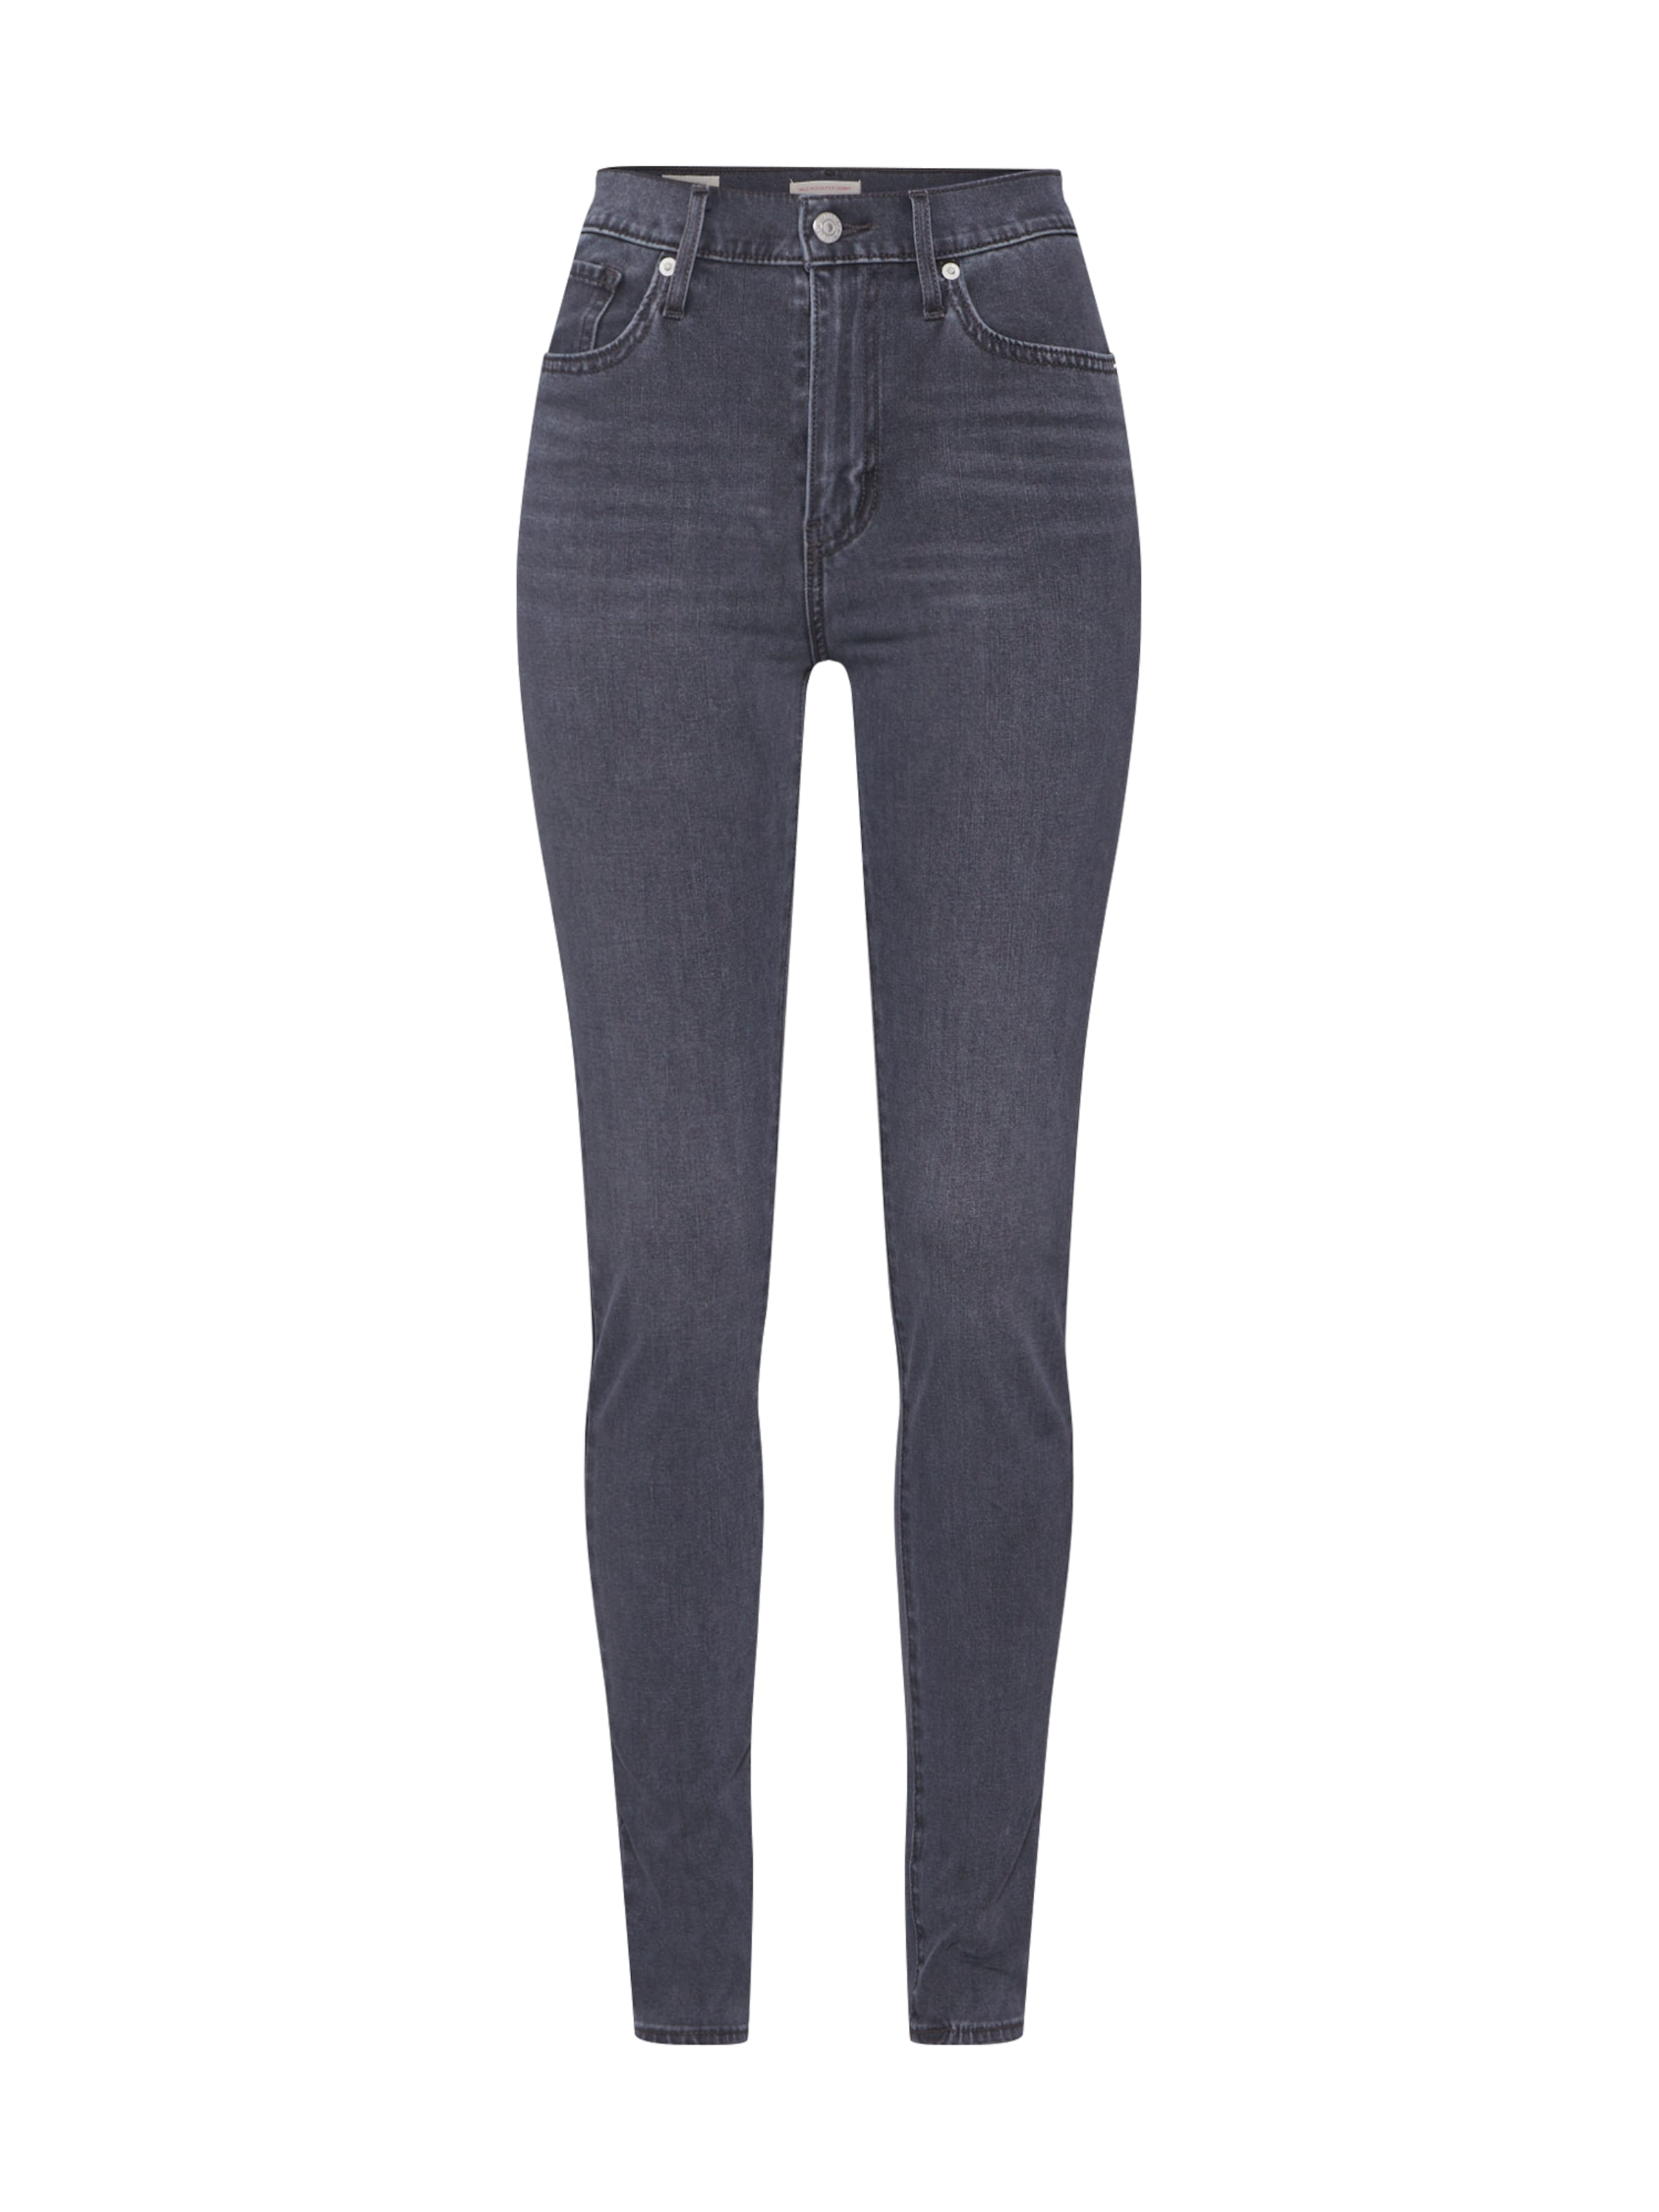 Levi's High' Jeans In Grey 'mile Denim 8nO0Pwk